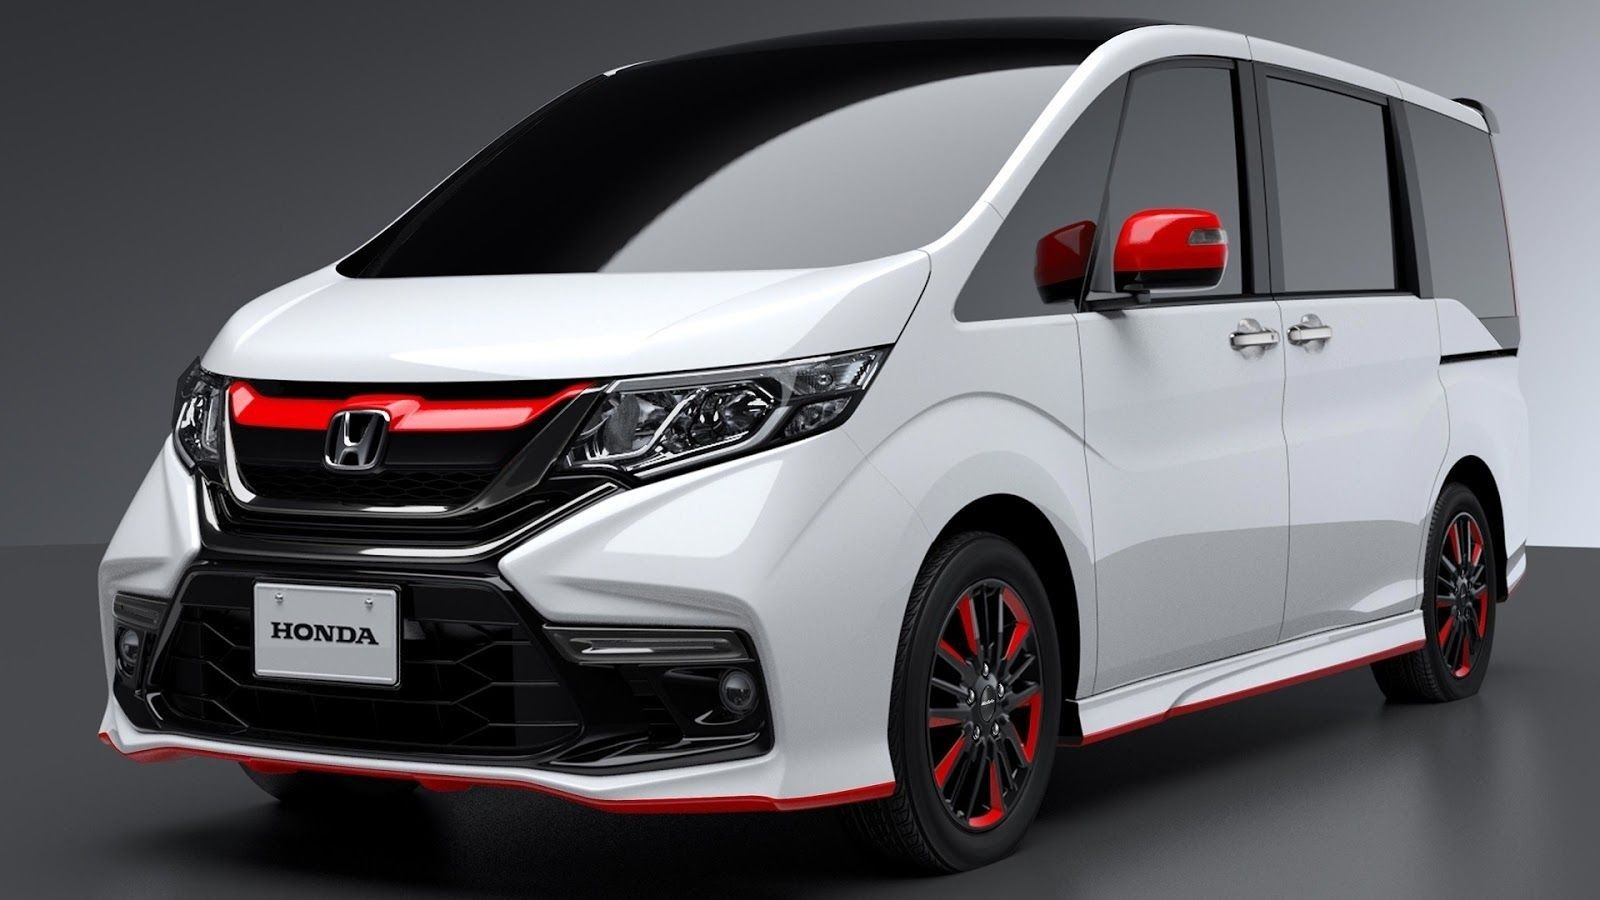 when will the Honda Freed 2020 come out | New cars, Honda, Car